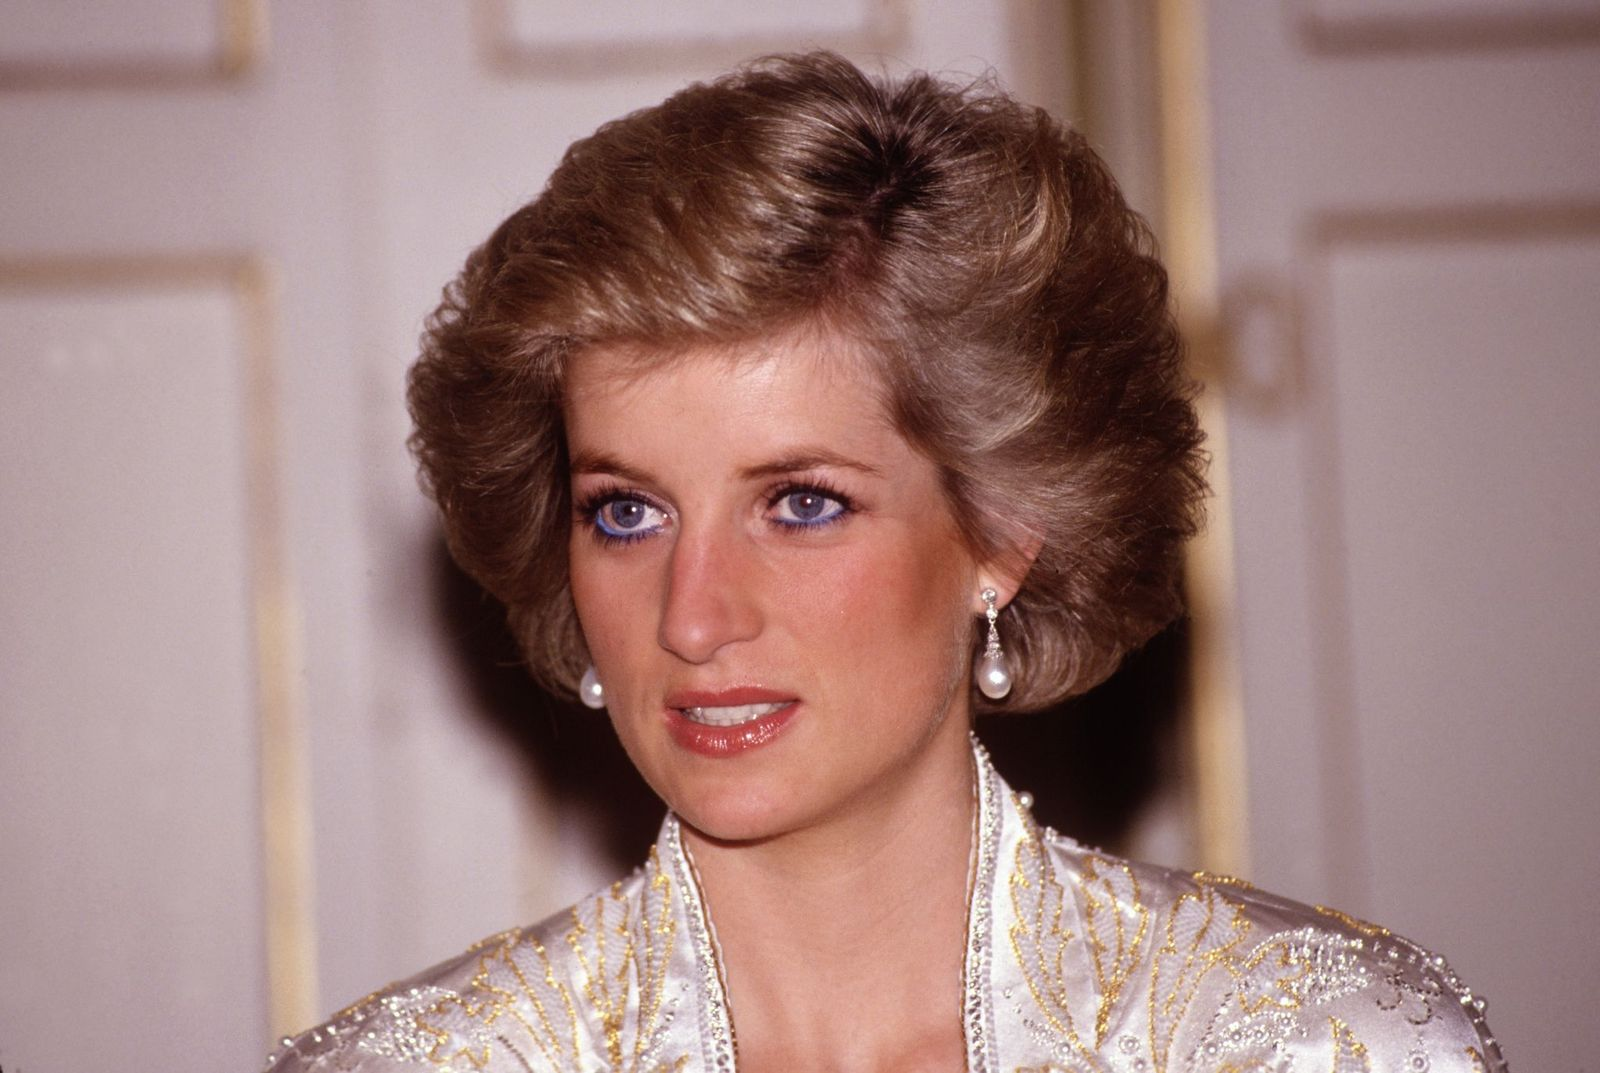 Princess Diana at a dinner given by President Mitterand in November, 1988 at the Elysee Palace in Paris, France | Photo: Getty Images